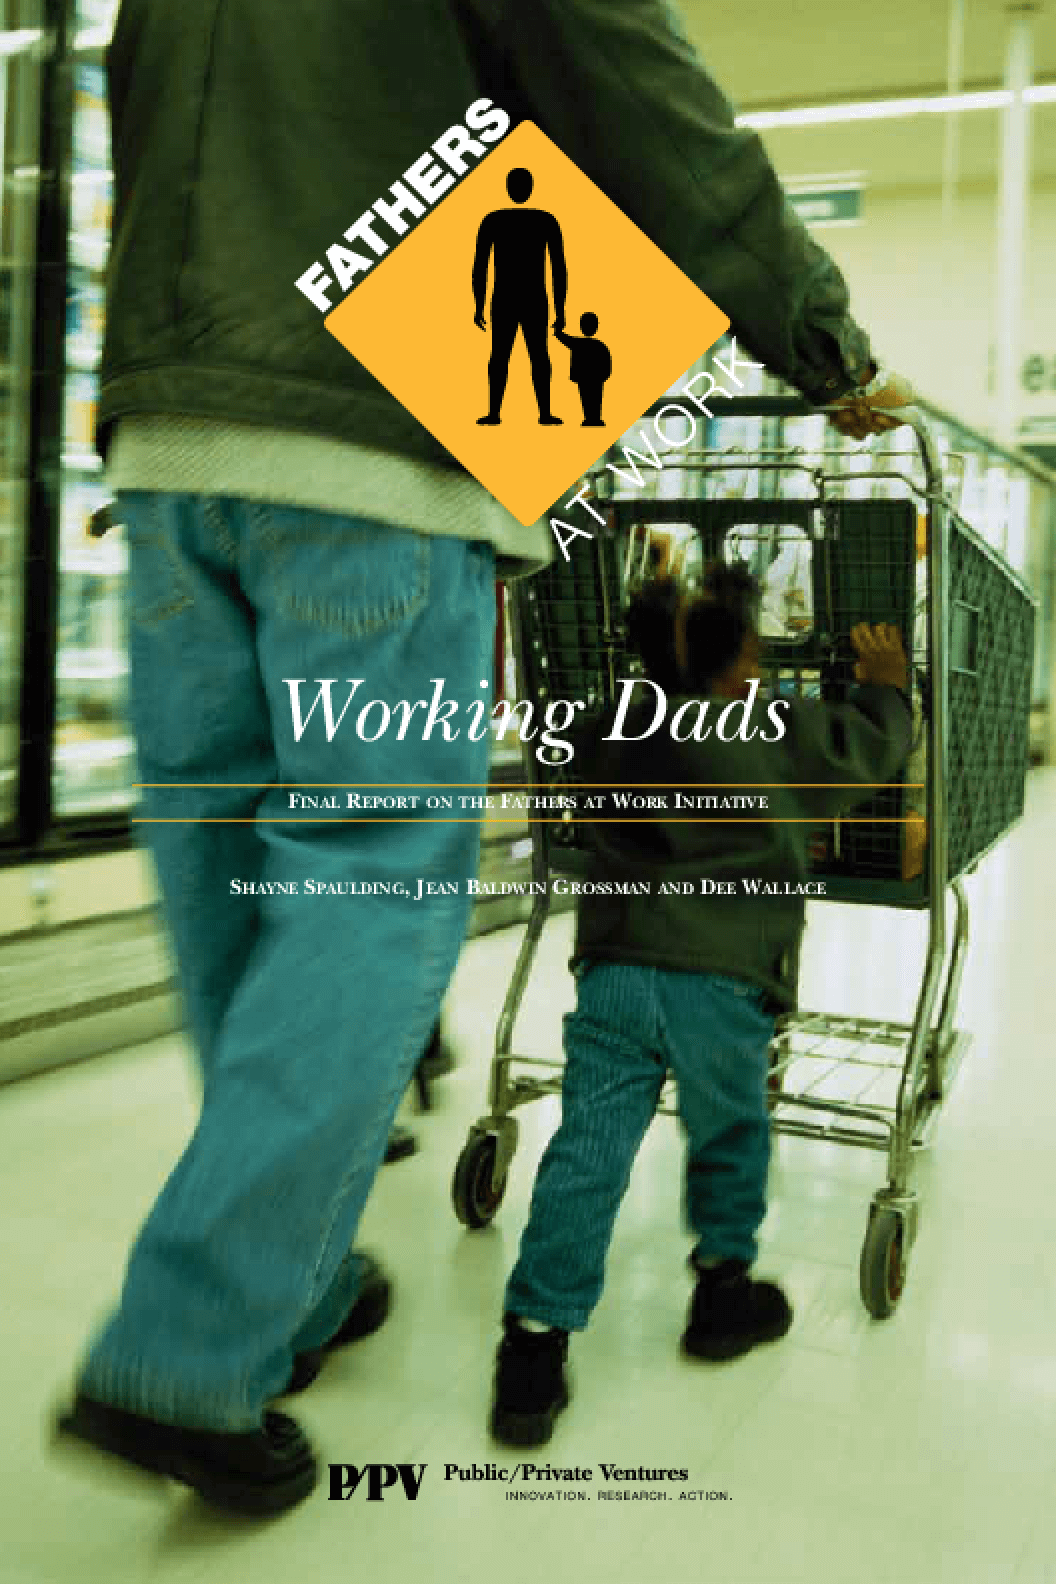 Working Dads: Final Report on the Fathers at Work Initiative